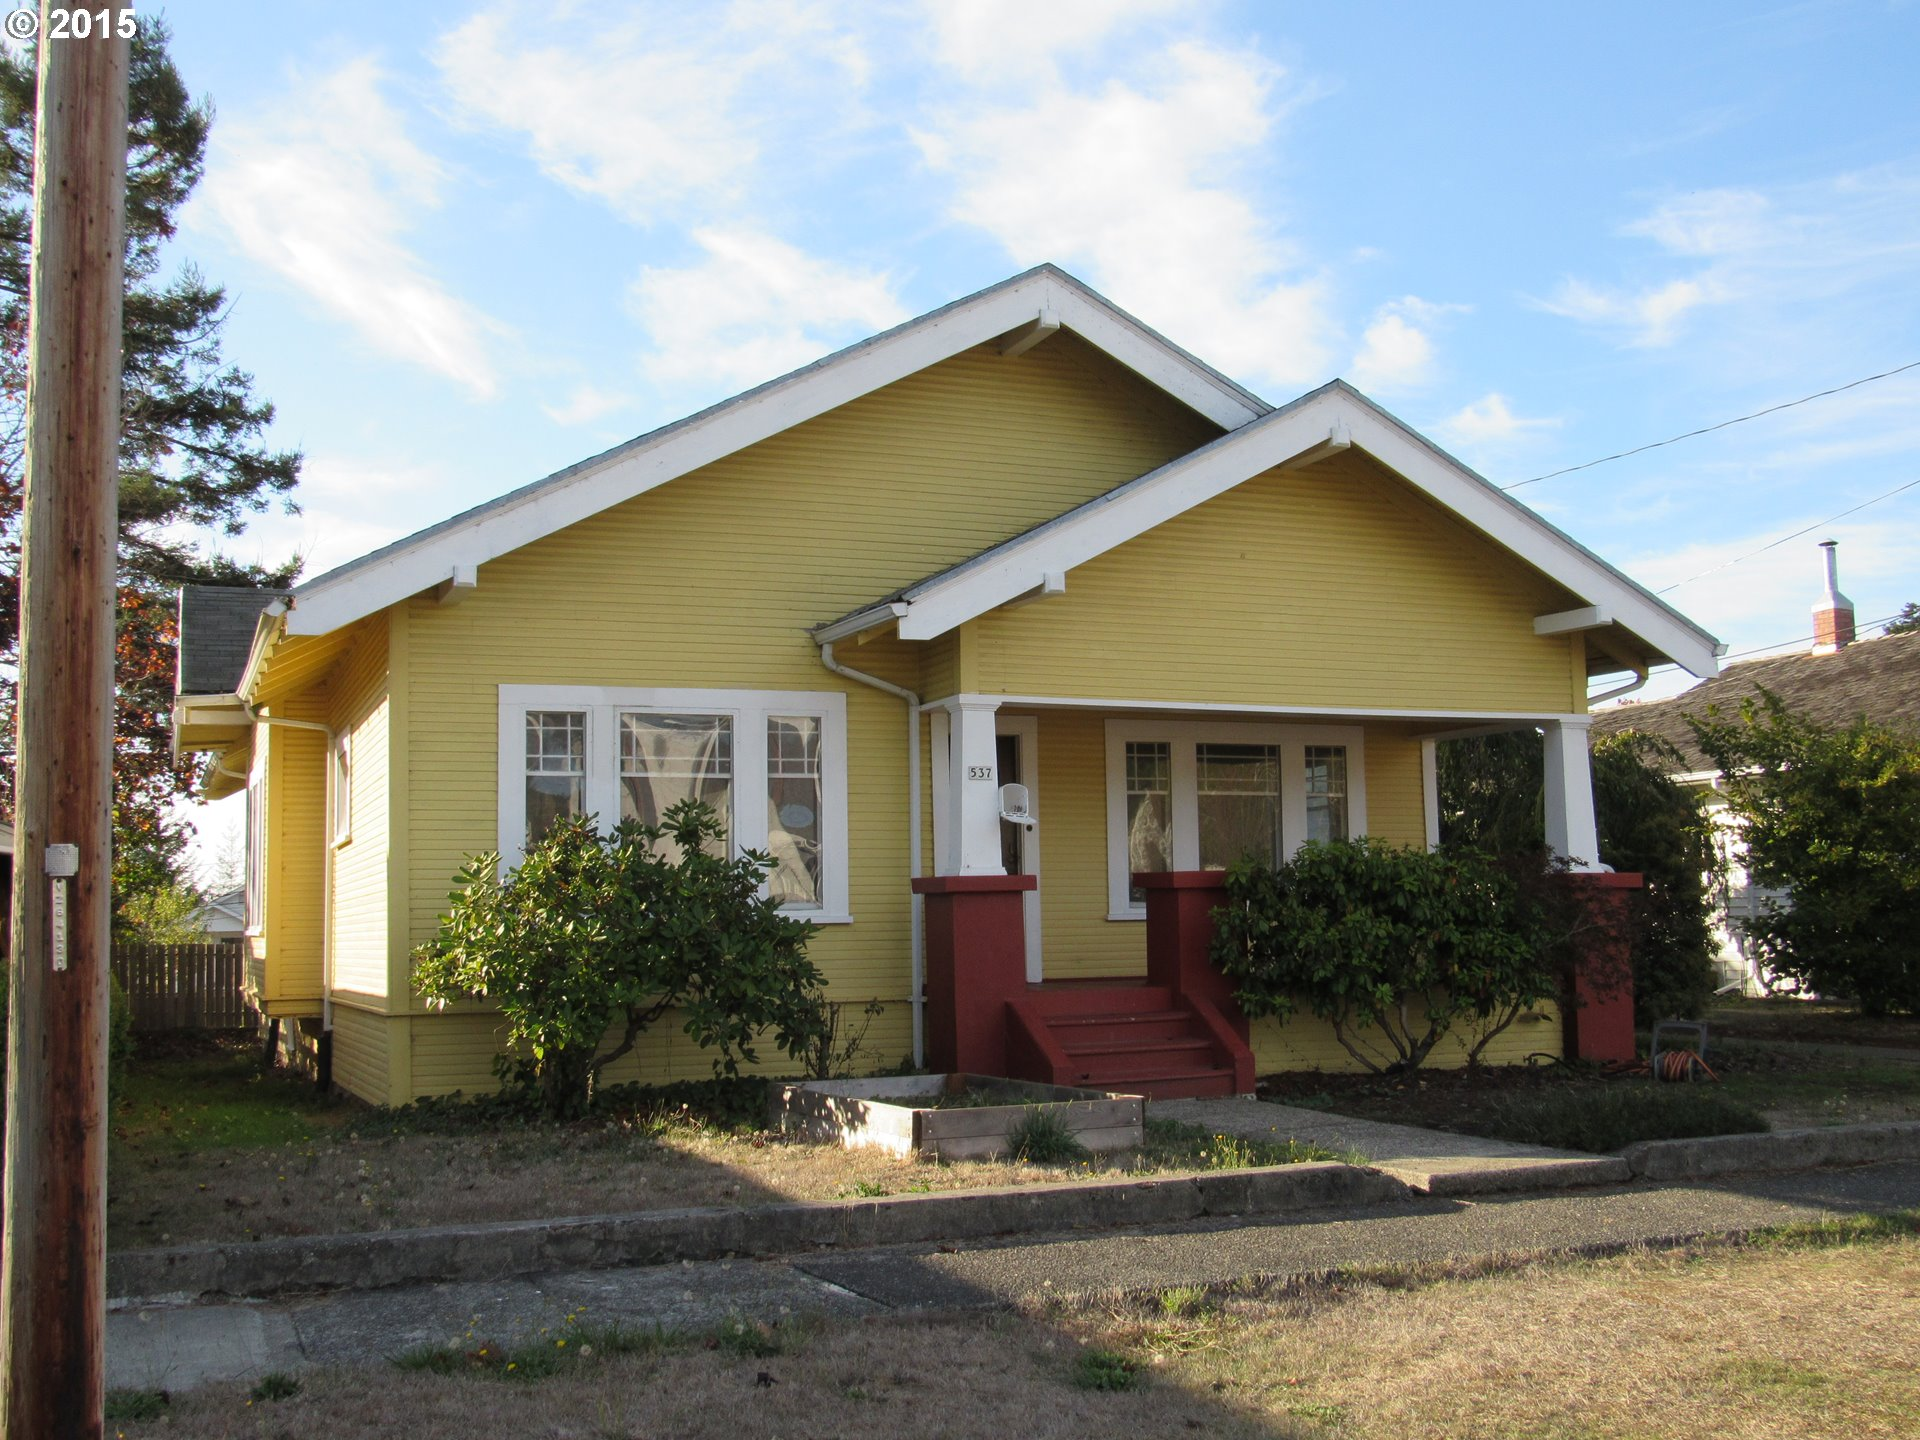 537 N Collier St, Coquille, OR